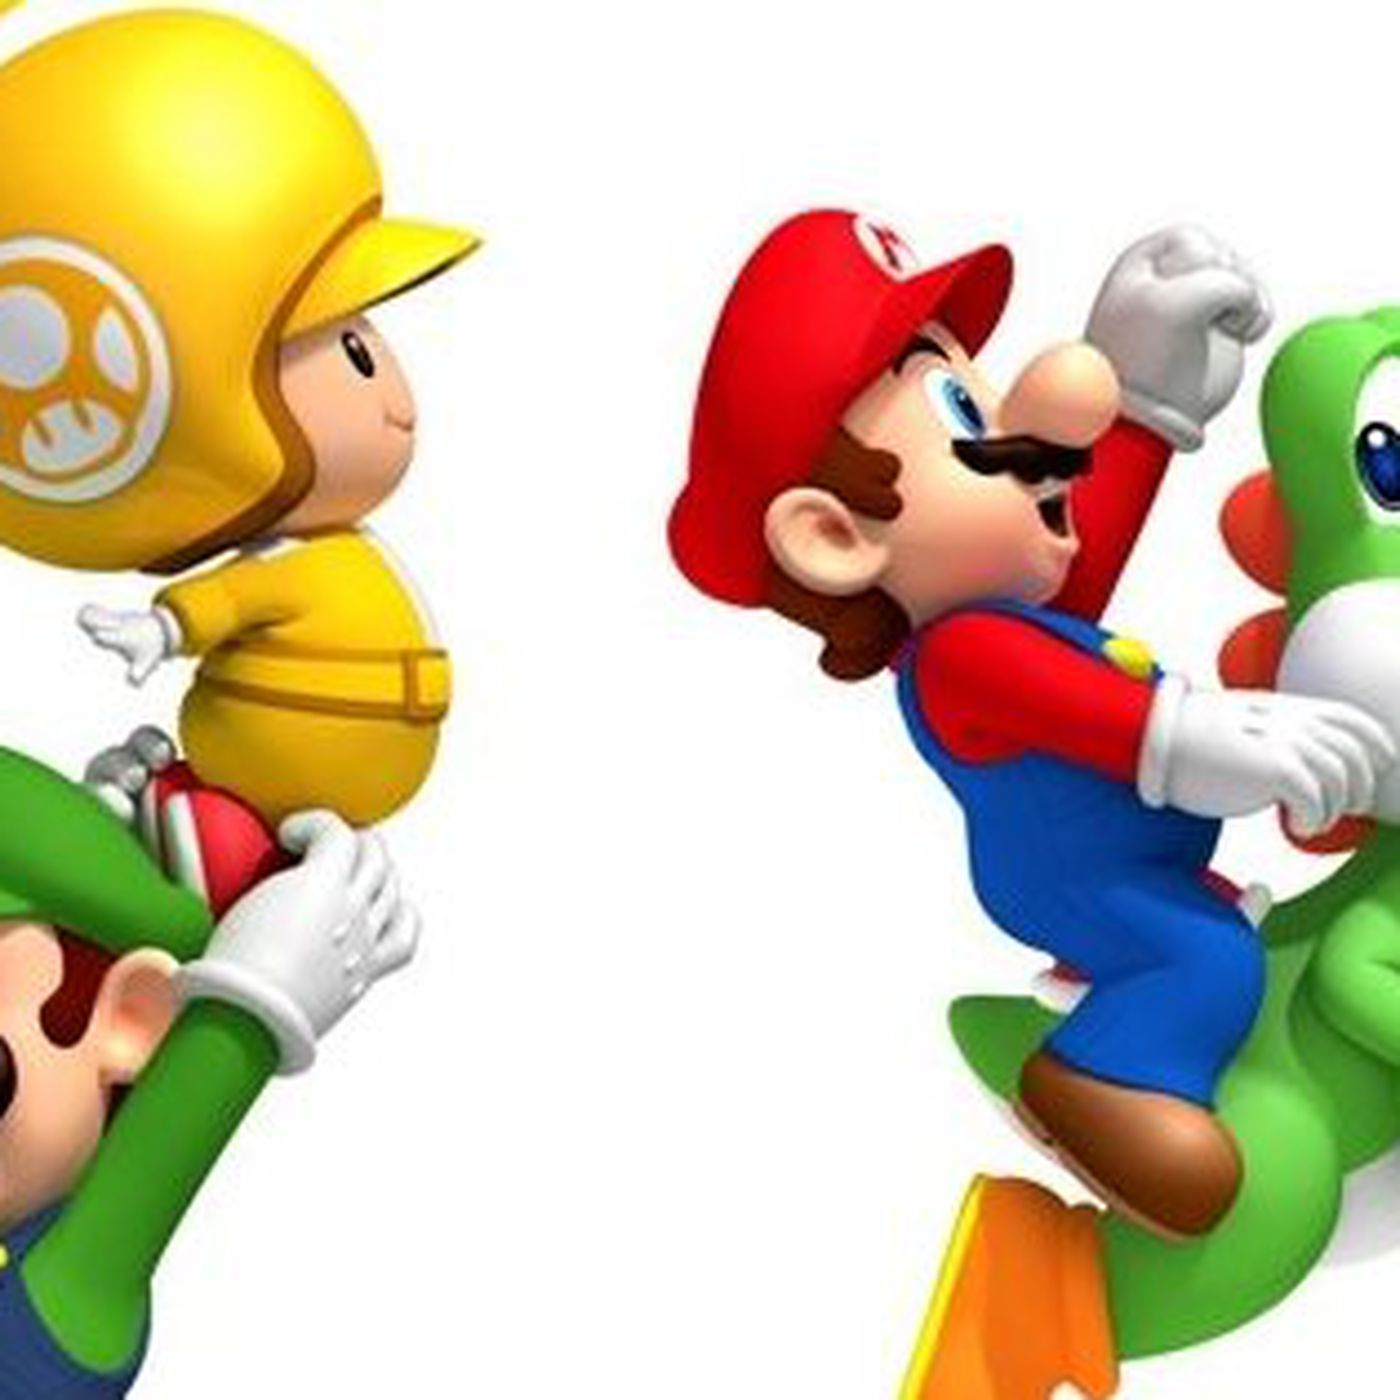 3ds Eshop Mario Titles On Sale Leading Up To New Super Mario Bros